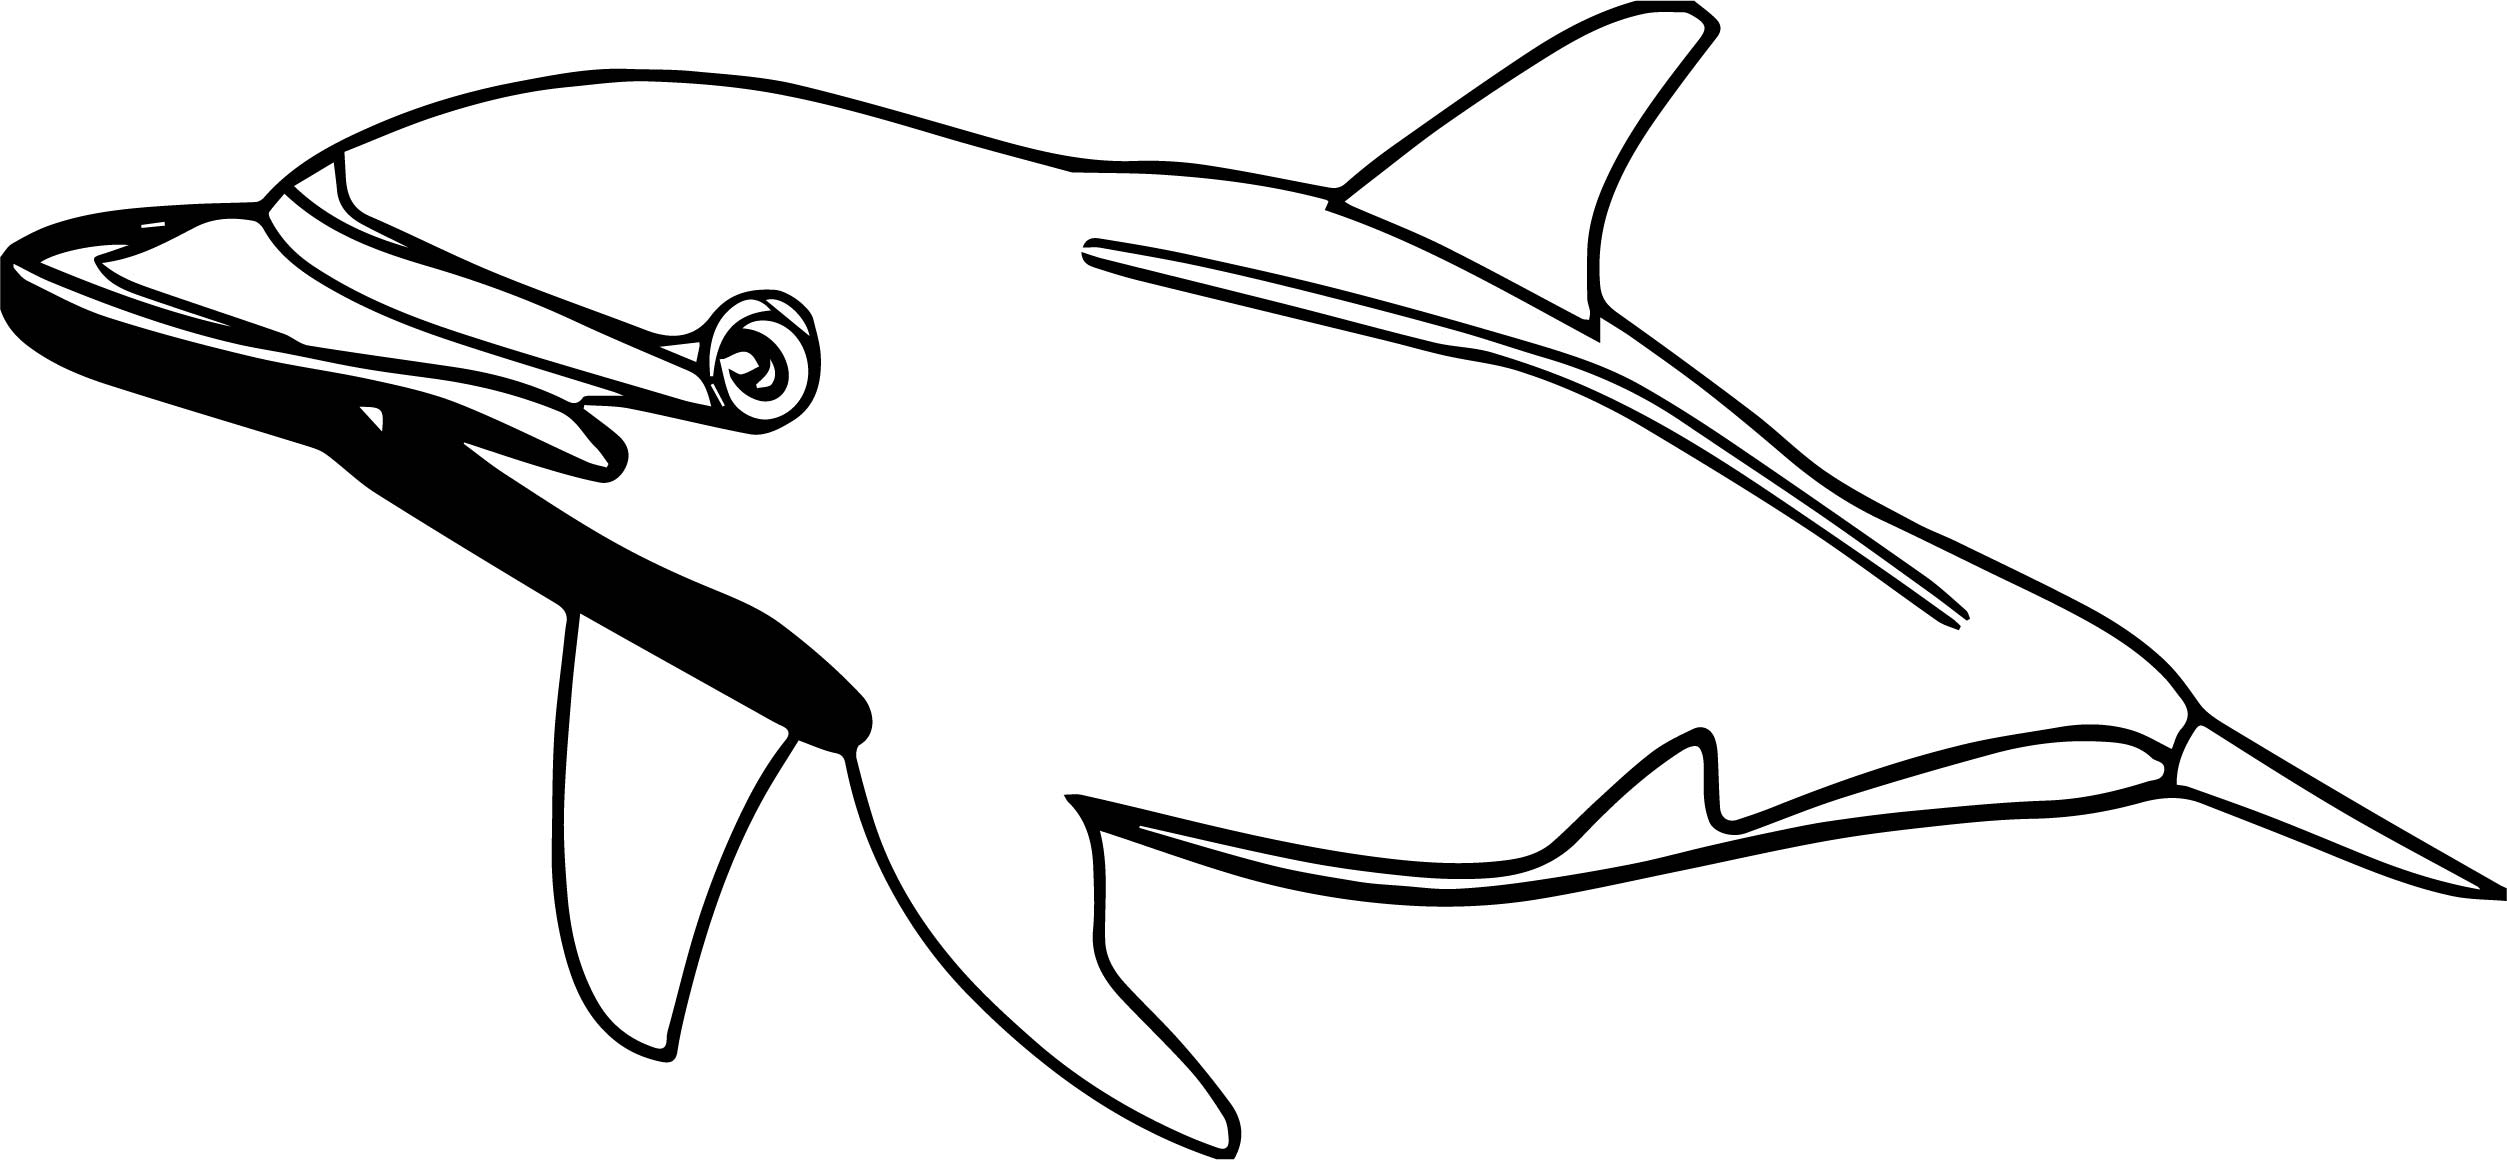 Dolphin Coloring Page 022